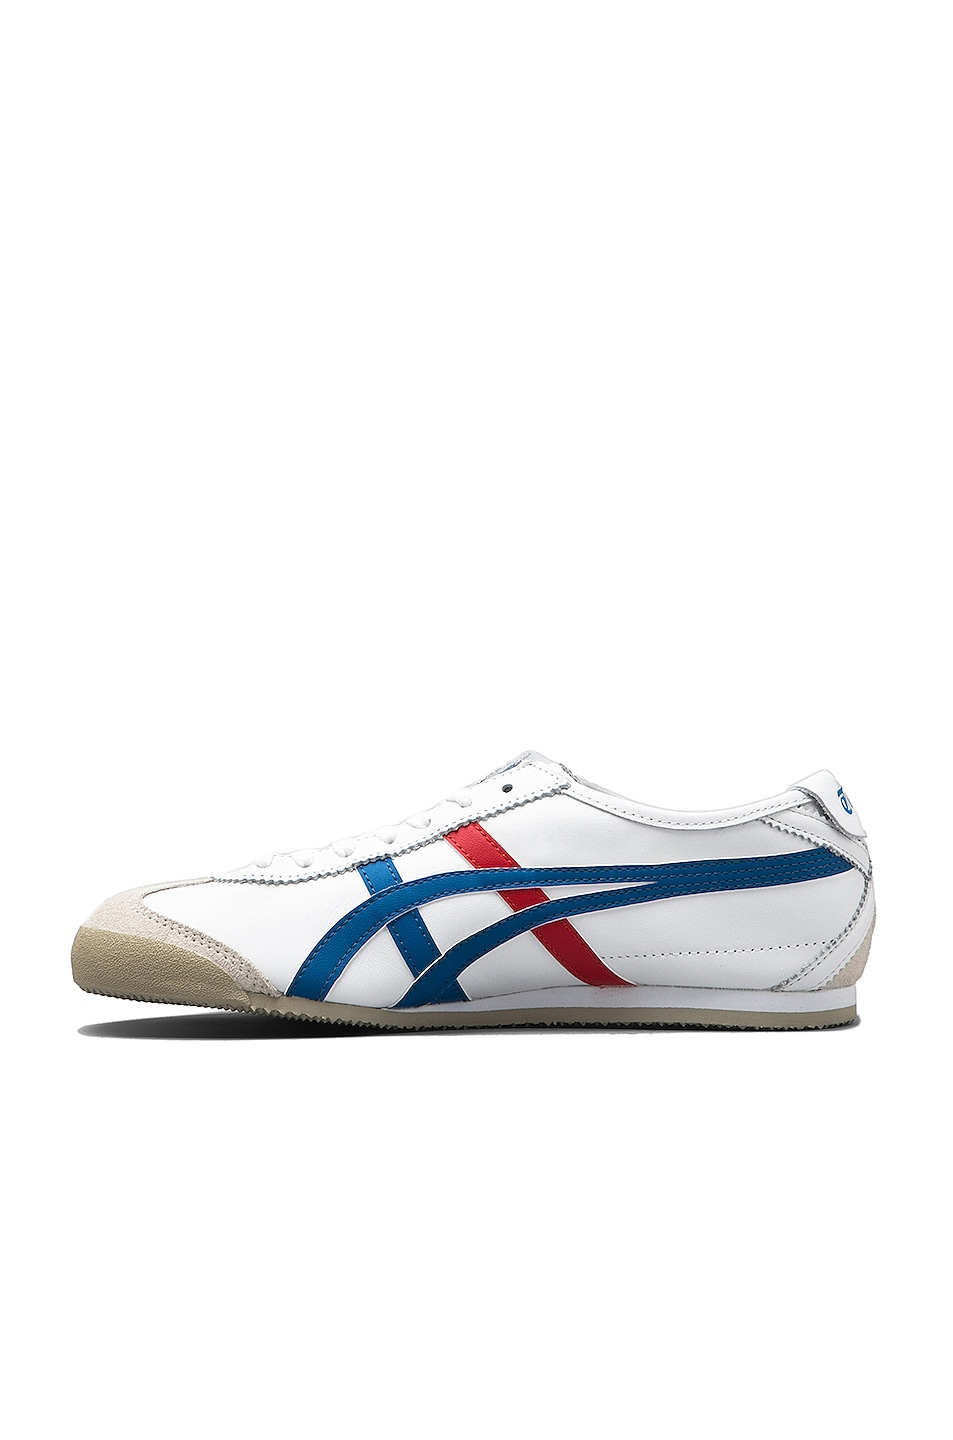 Image 5 of Onitsuka Tiger Mexico 66 in White & Blue